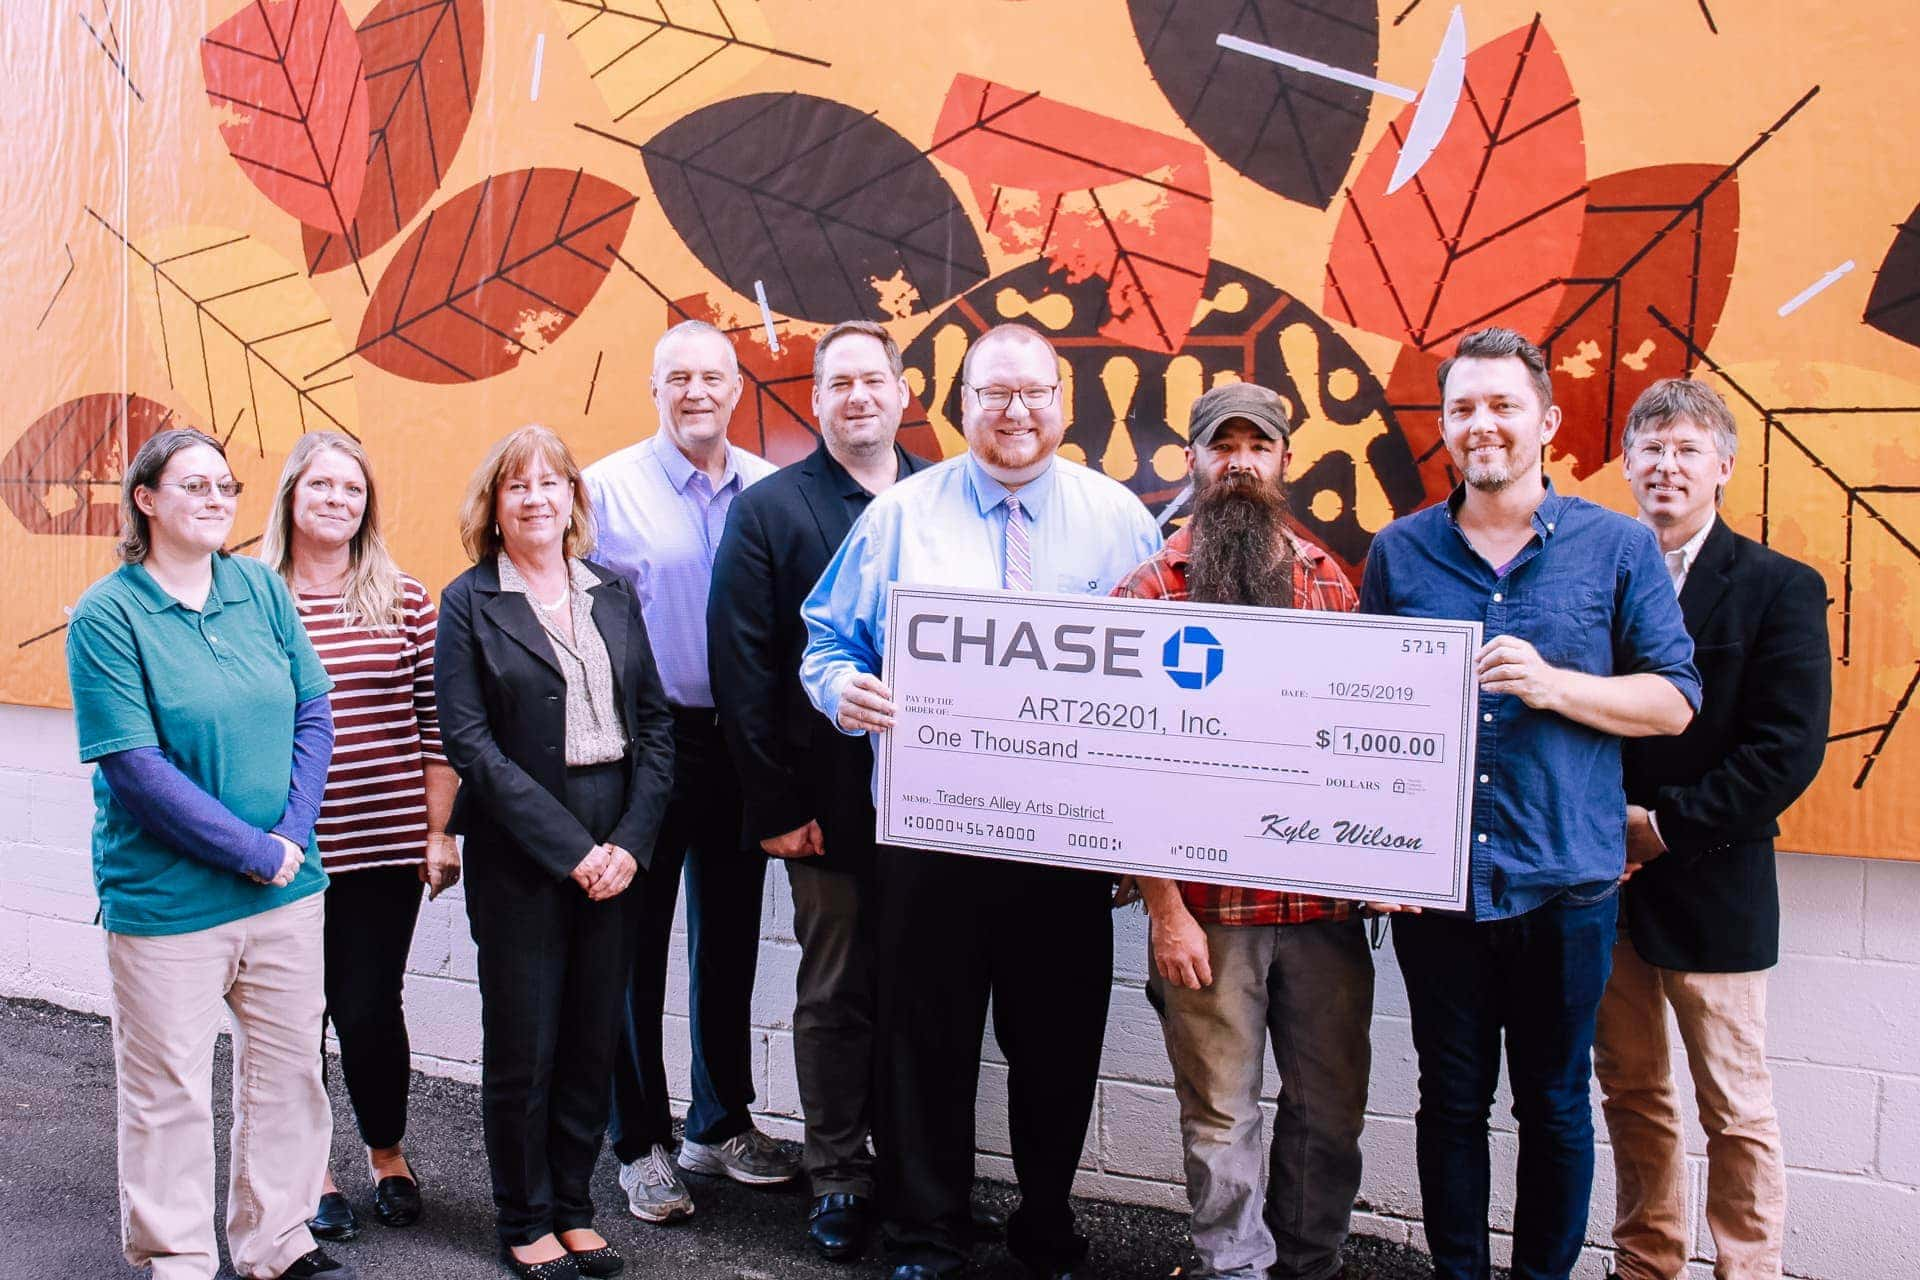 Kyle Wilson of Chase Bank (center) presents the donation to ART26201 members Allison Corbin, Virginia Hicks, Lisa Wharton, C.J. Rylands, and John Waltz, on left, and Tim Hibbs, Bobby Howsare, and Bryson VanNostrand on right.